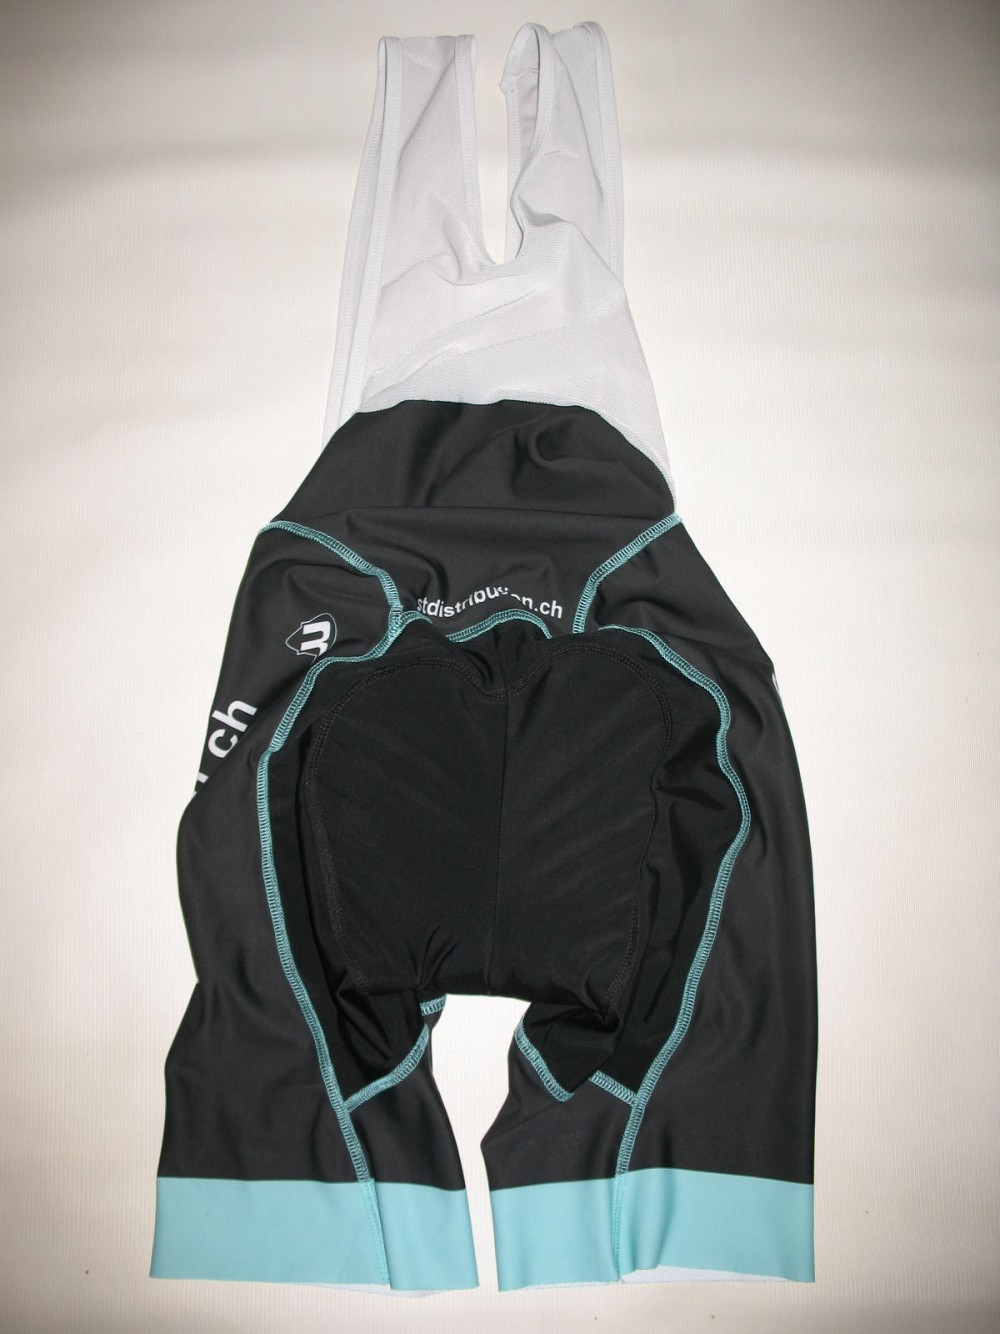 Велошорты VIFRA bib cycling shorts (размер М) - 2